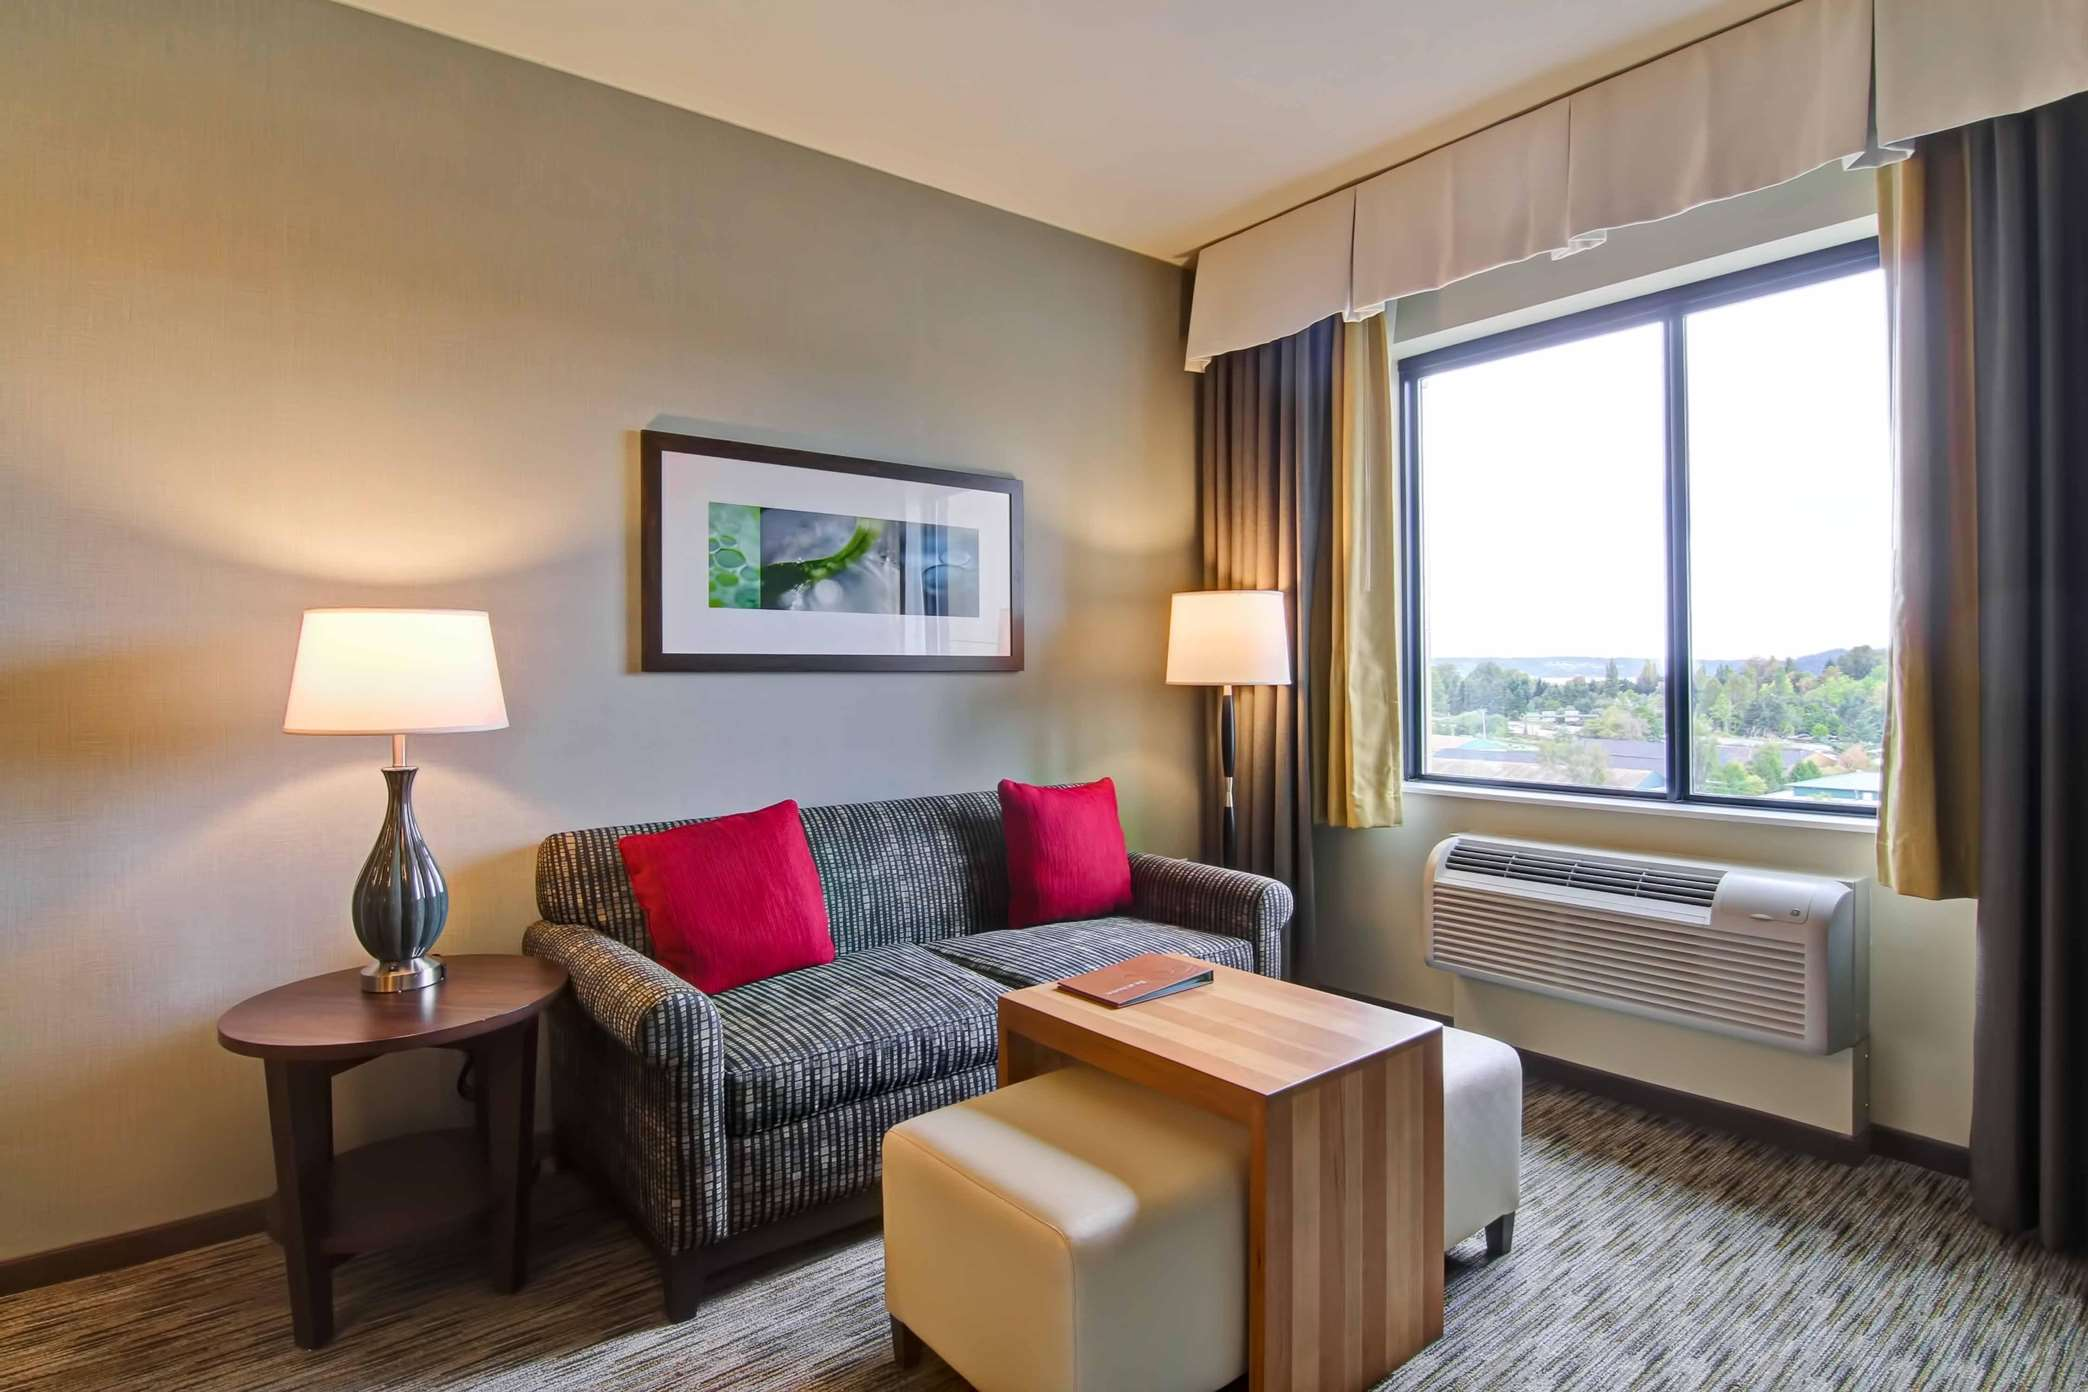 Homewood Suites by Hilton Seattle-Issaquah image 18